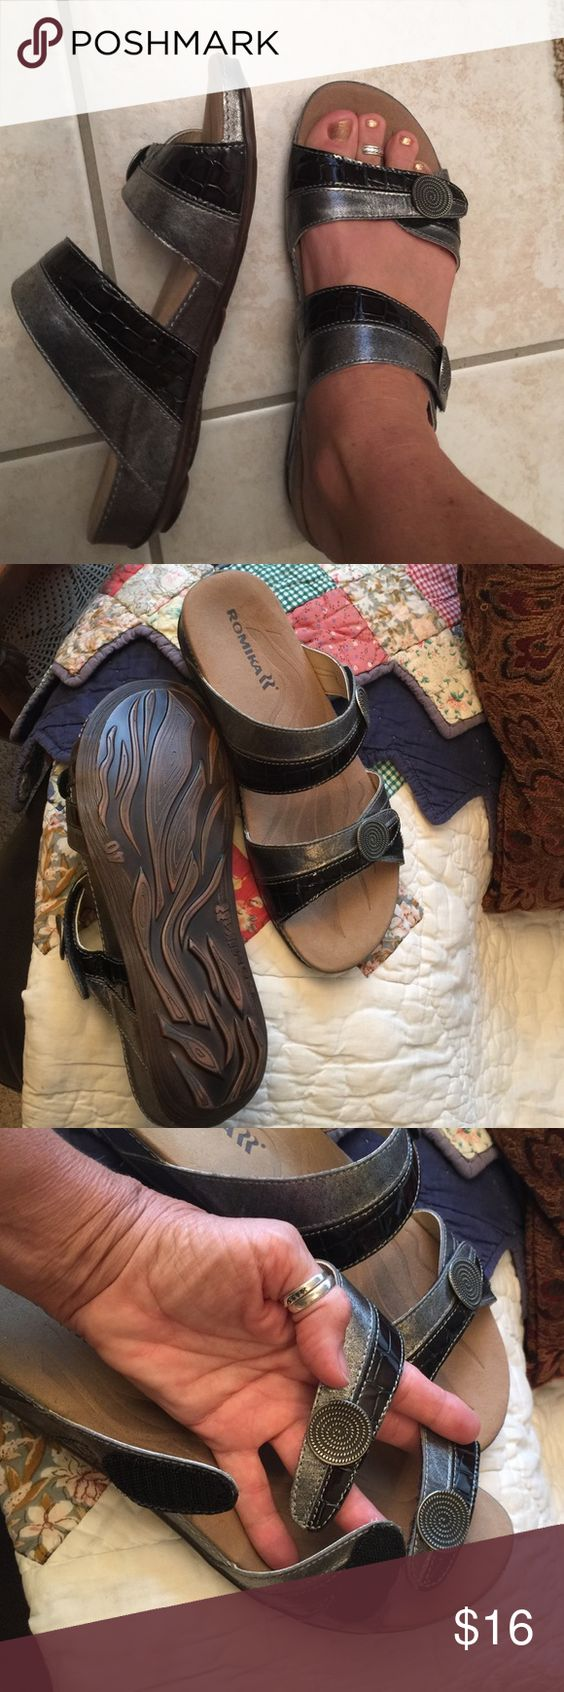 "Amazing 💥 Romika Sandals States size 40. I wear 8 and they appear about 1/2 a size to big. 👣👣👣 Velcro straps. Inside states ""Fidschi-22"" Romika Shoes Sandals"